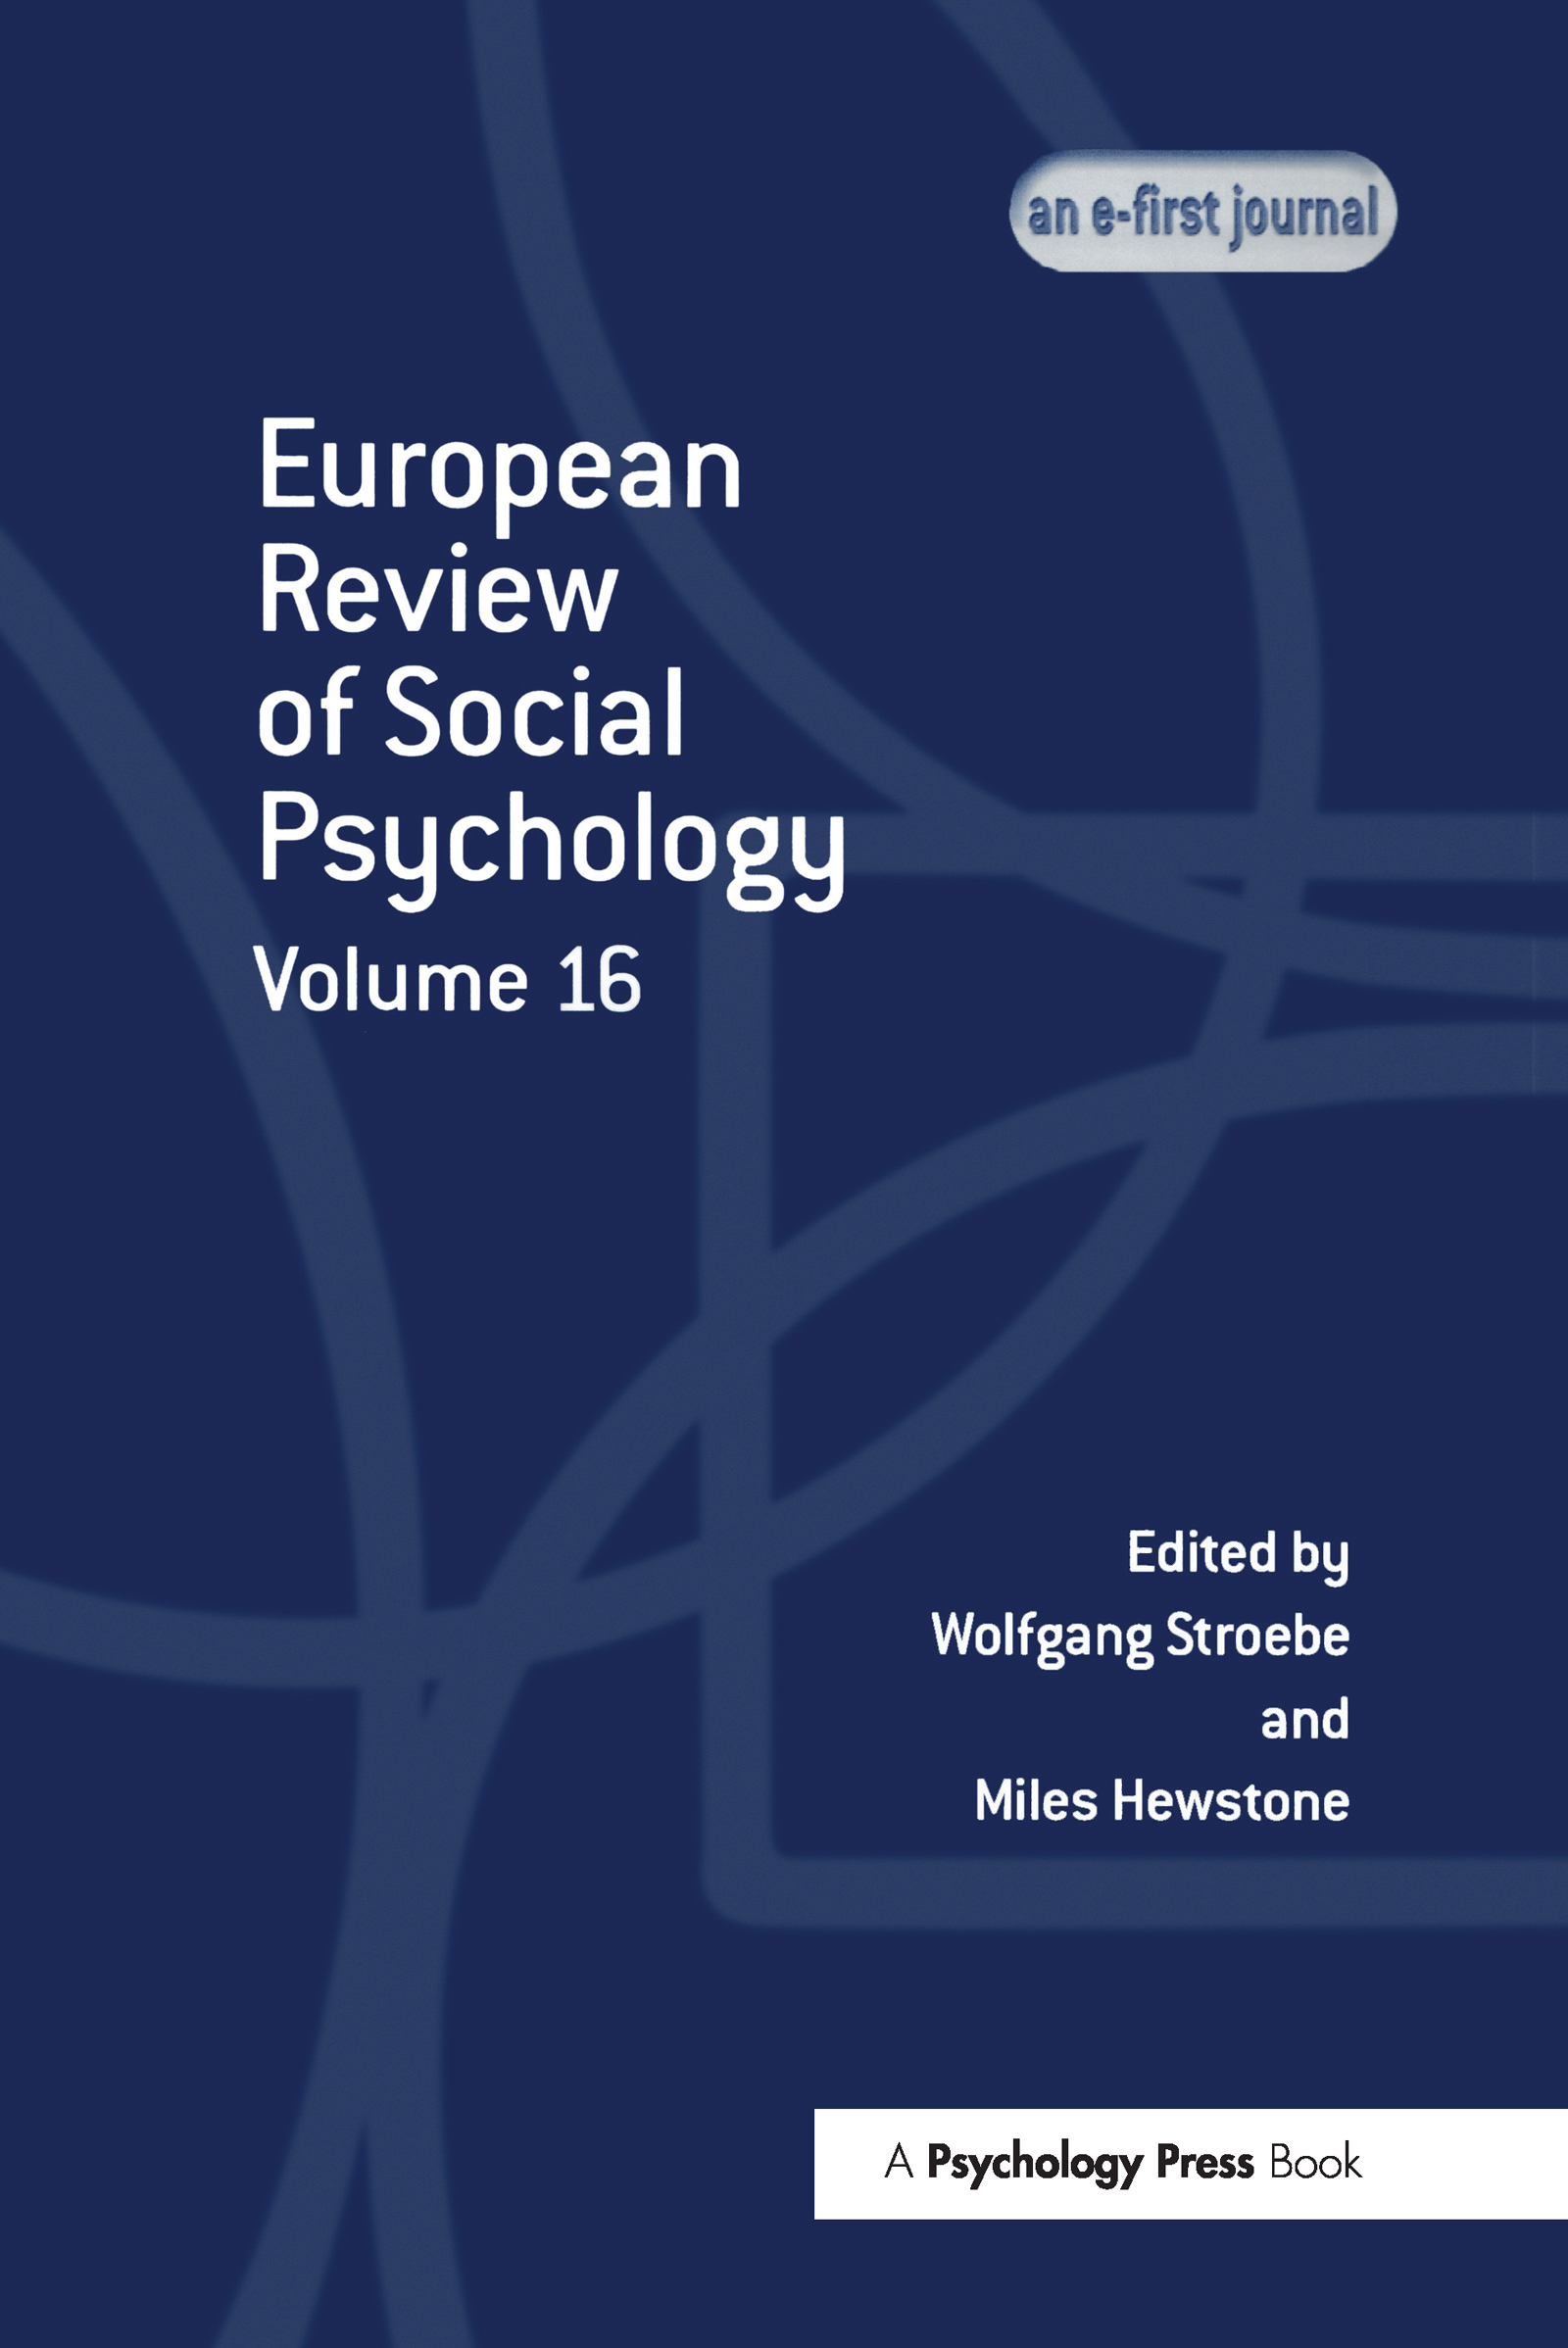 European Review of Social Psychology: Volume 16 book cover